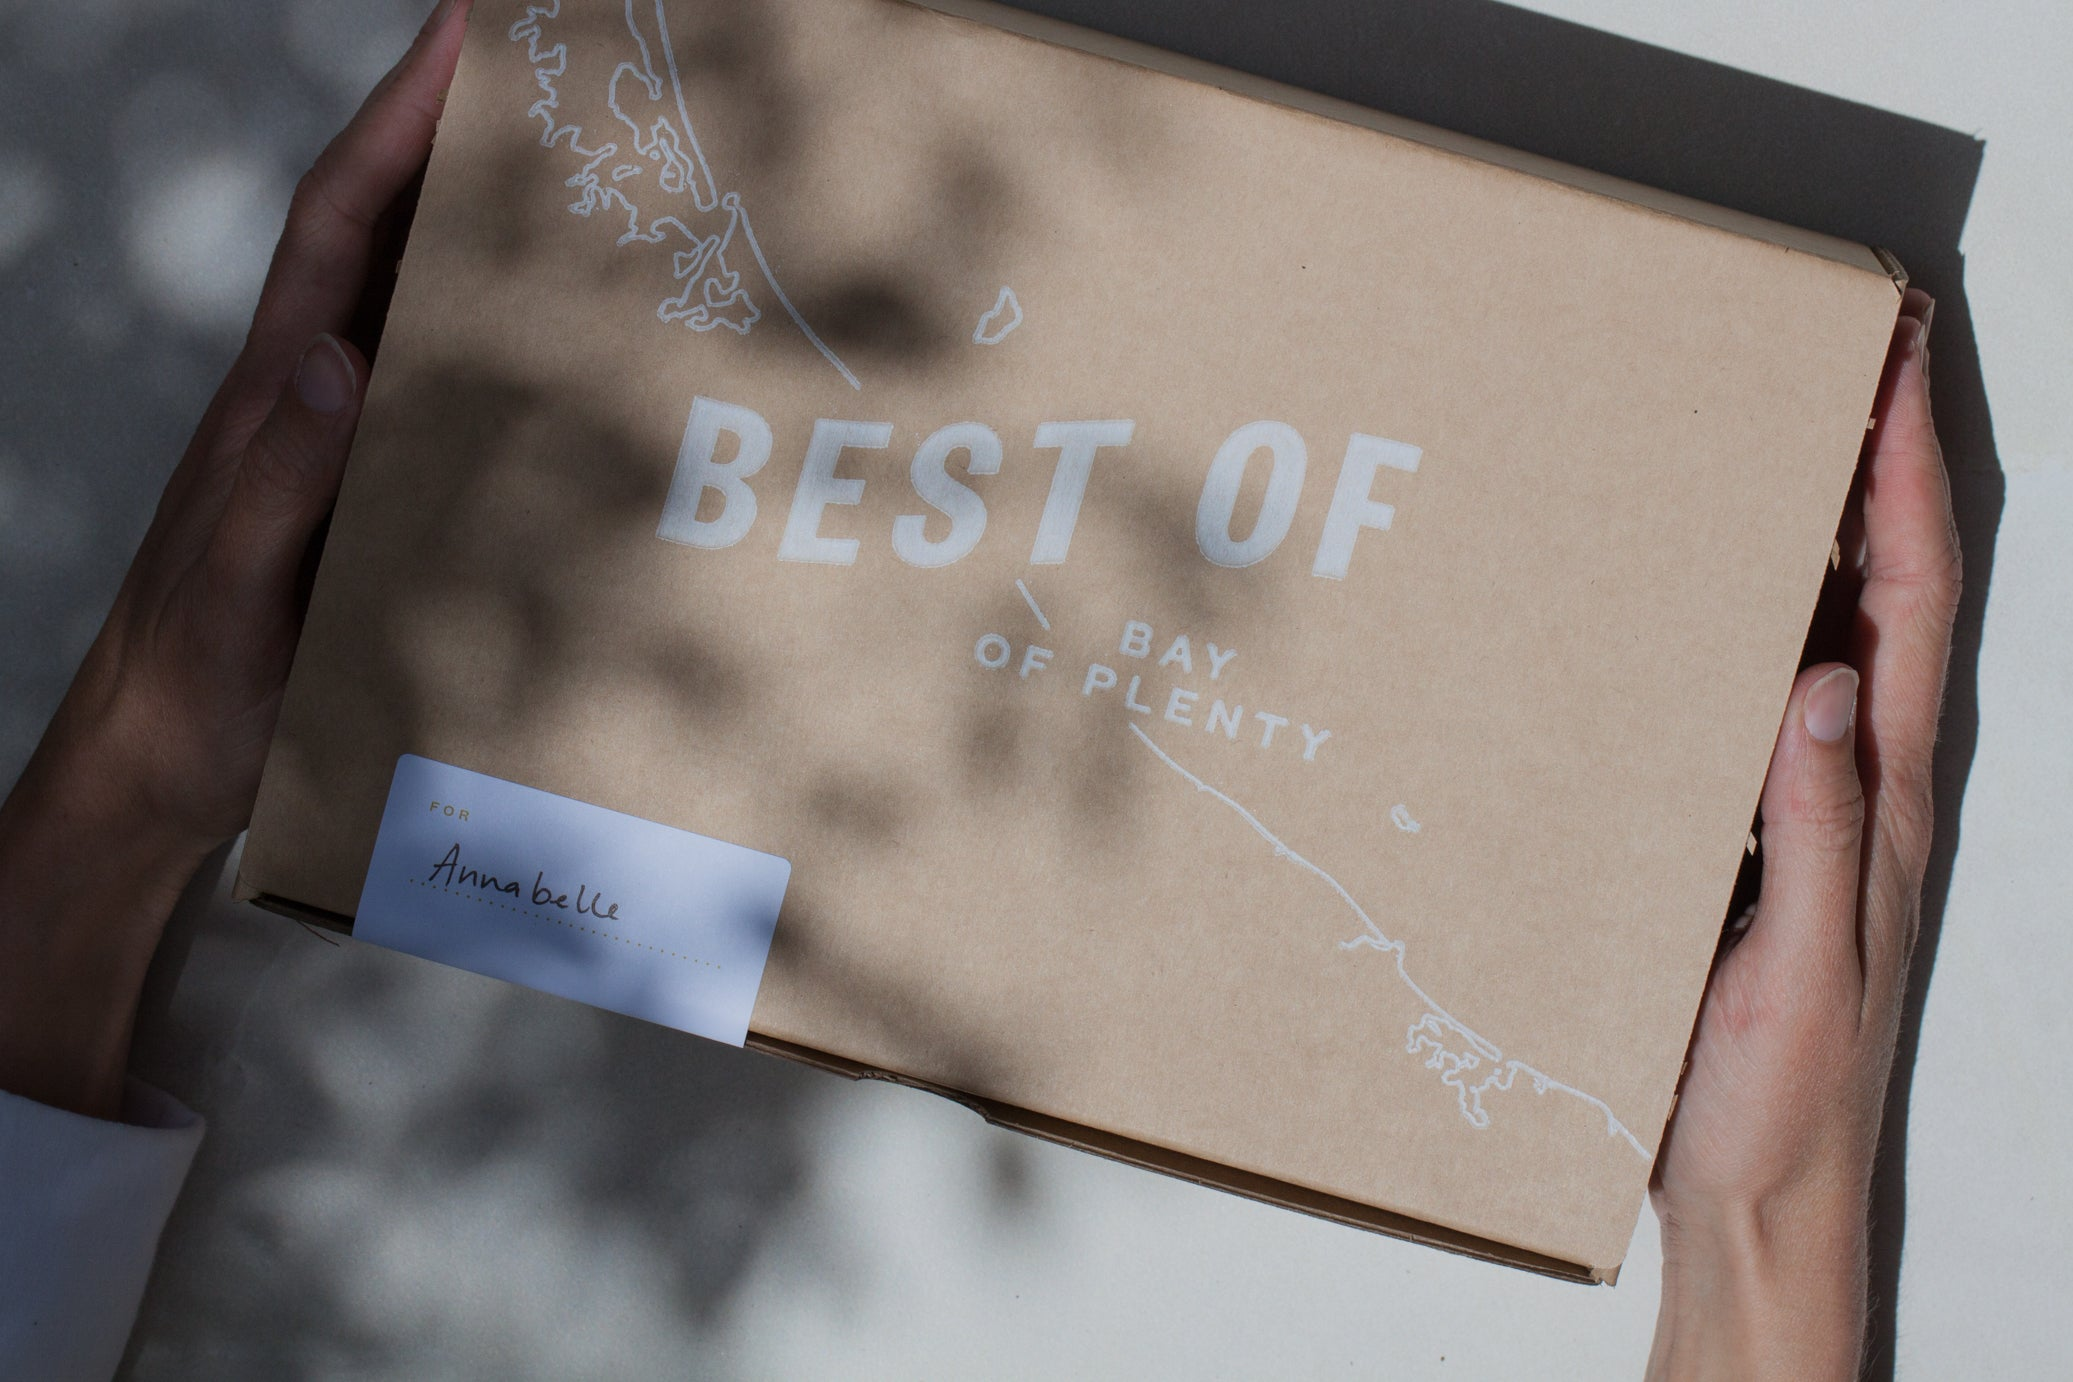 Best-of-recycled-cardboard-gift-box2